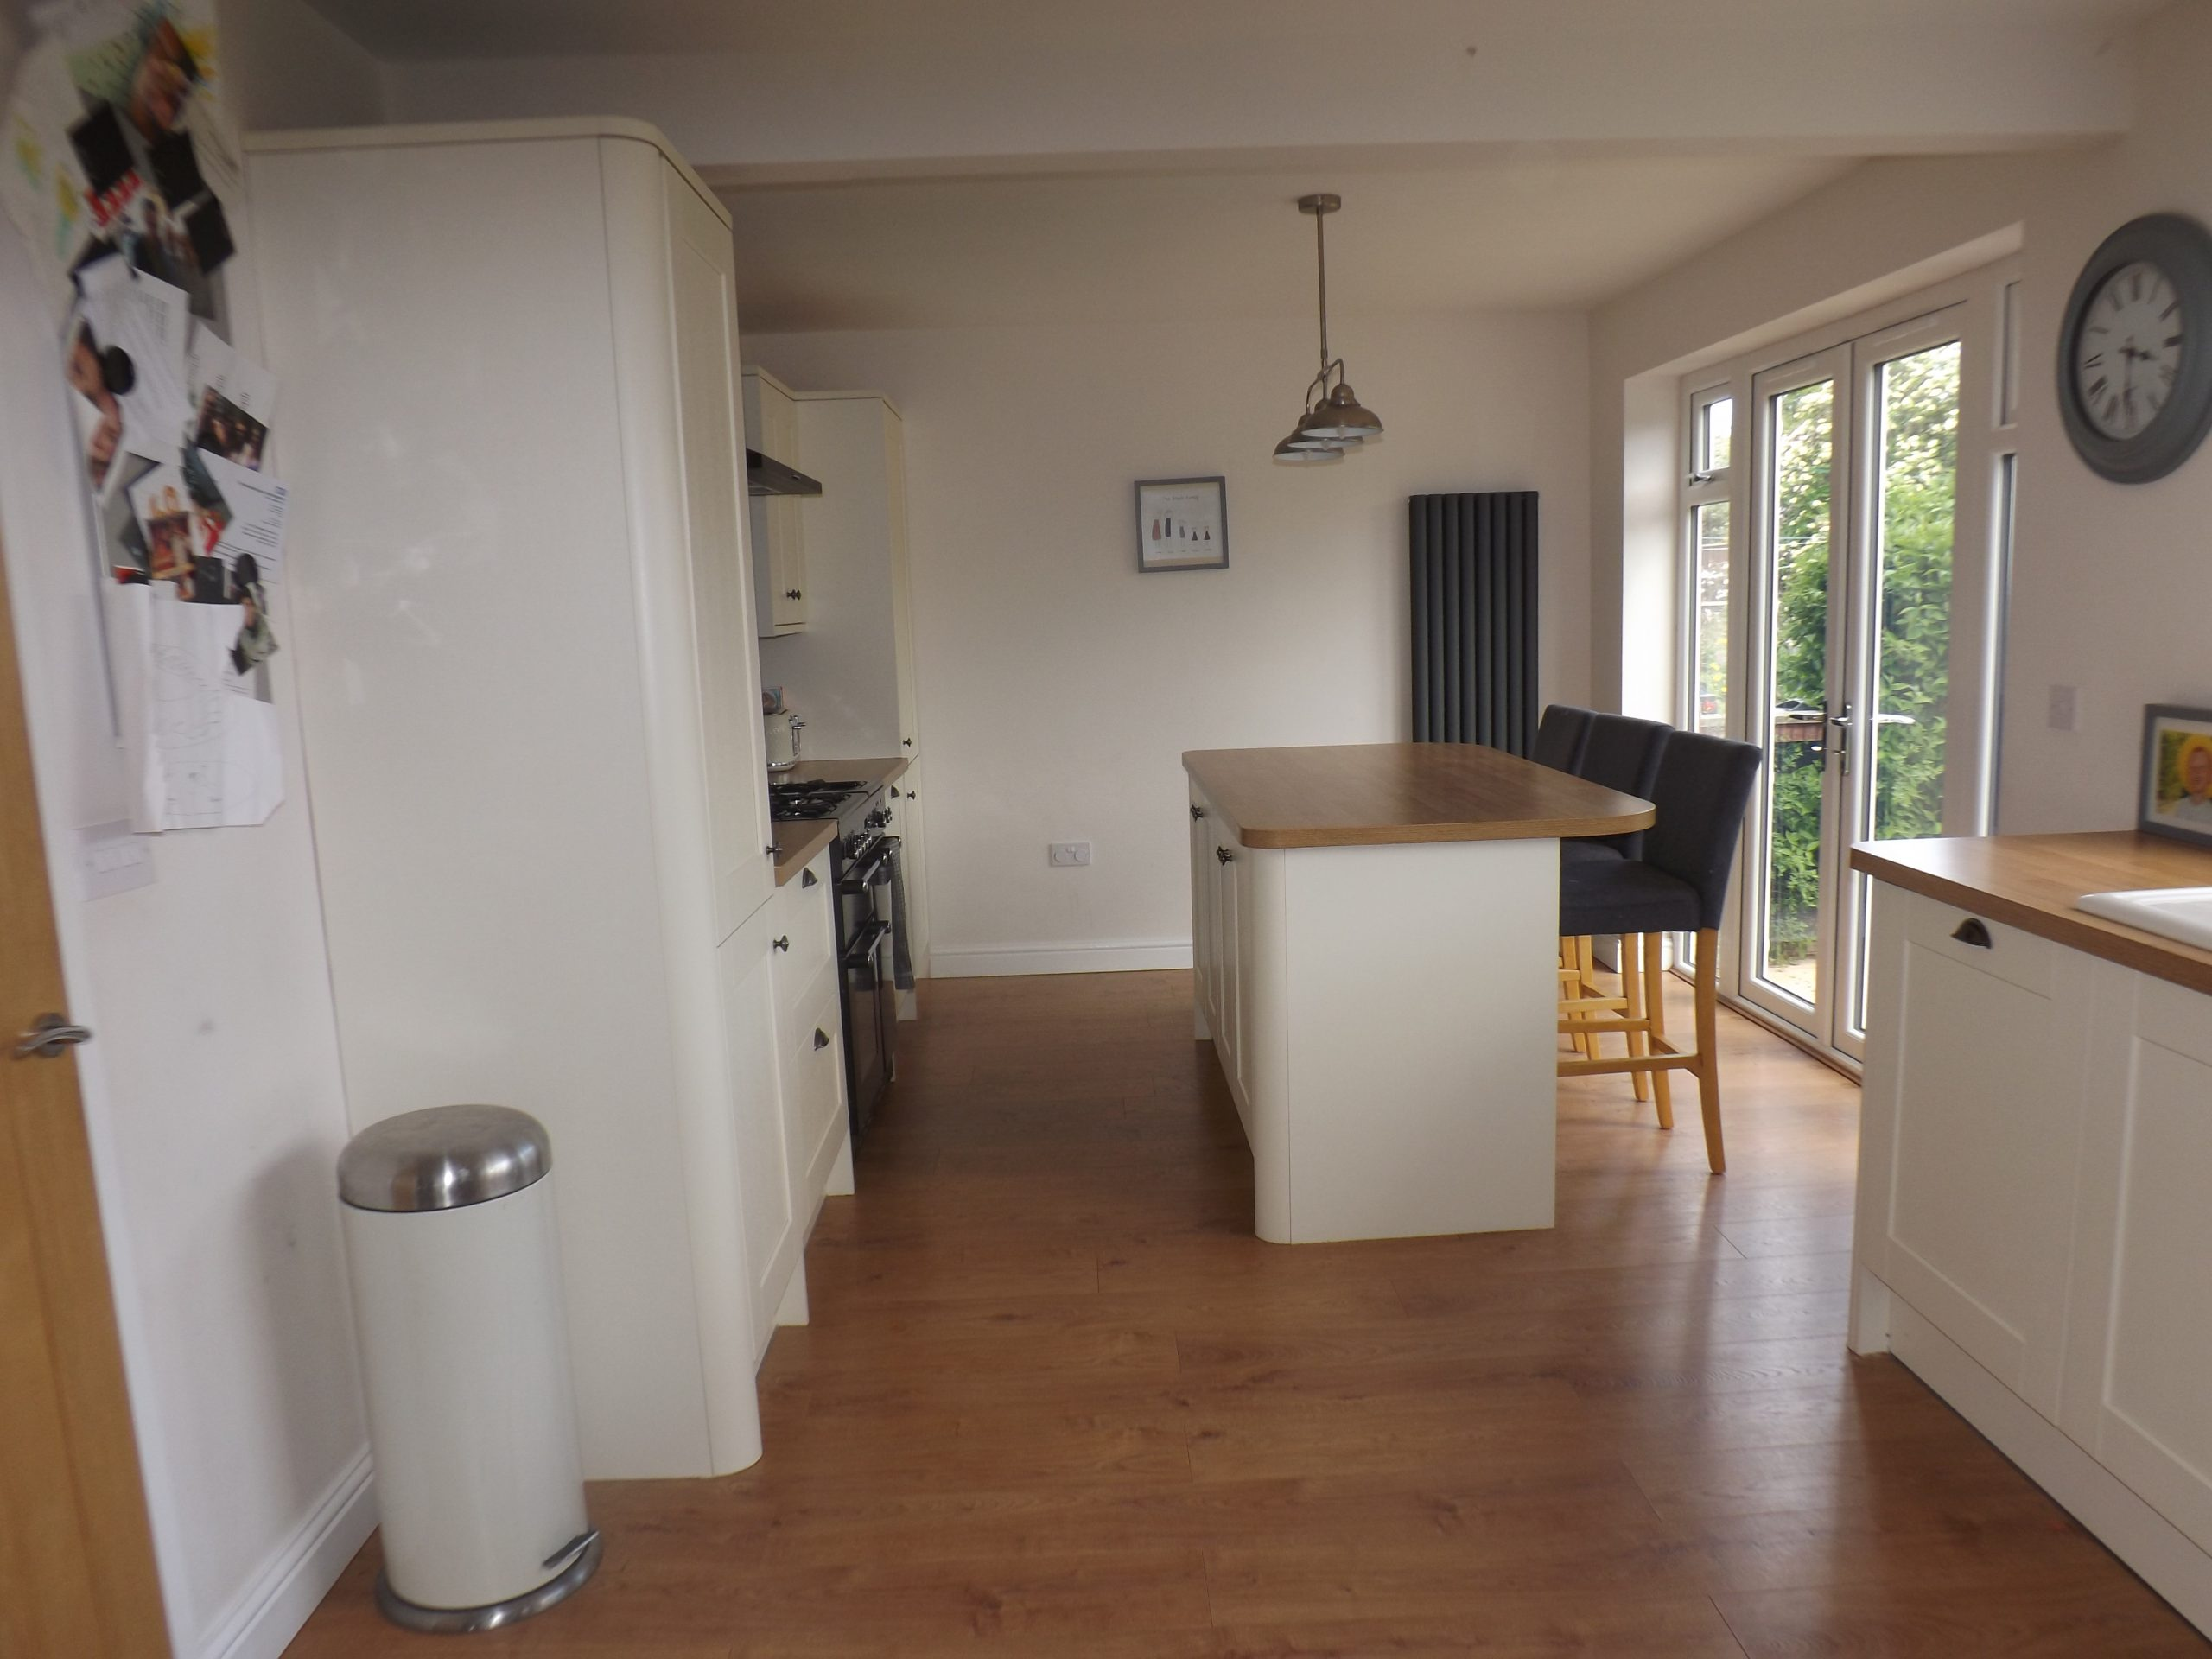 house kitchen in Property in Friarside, Witton Gilbert